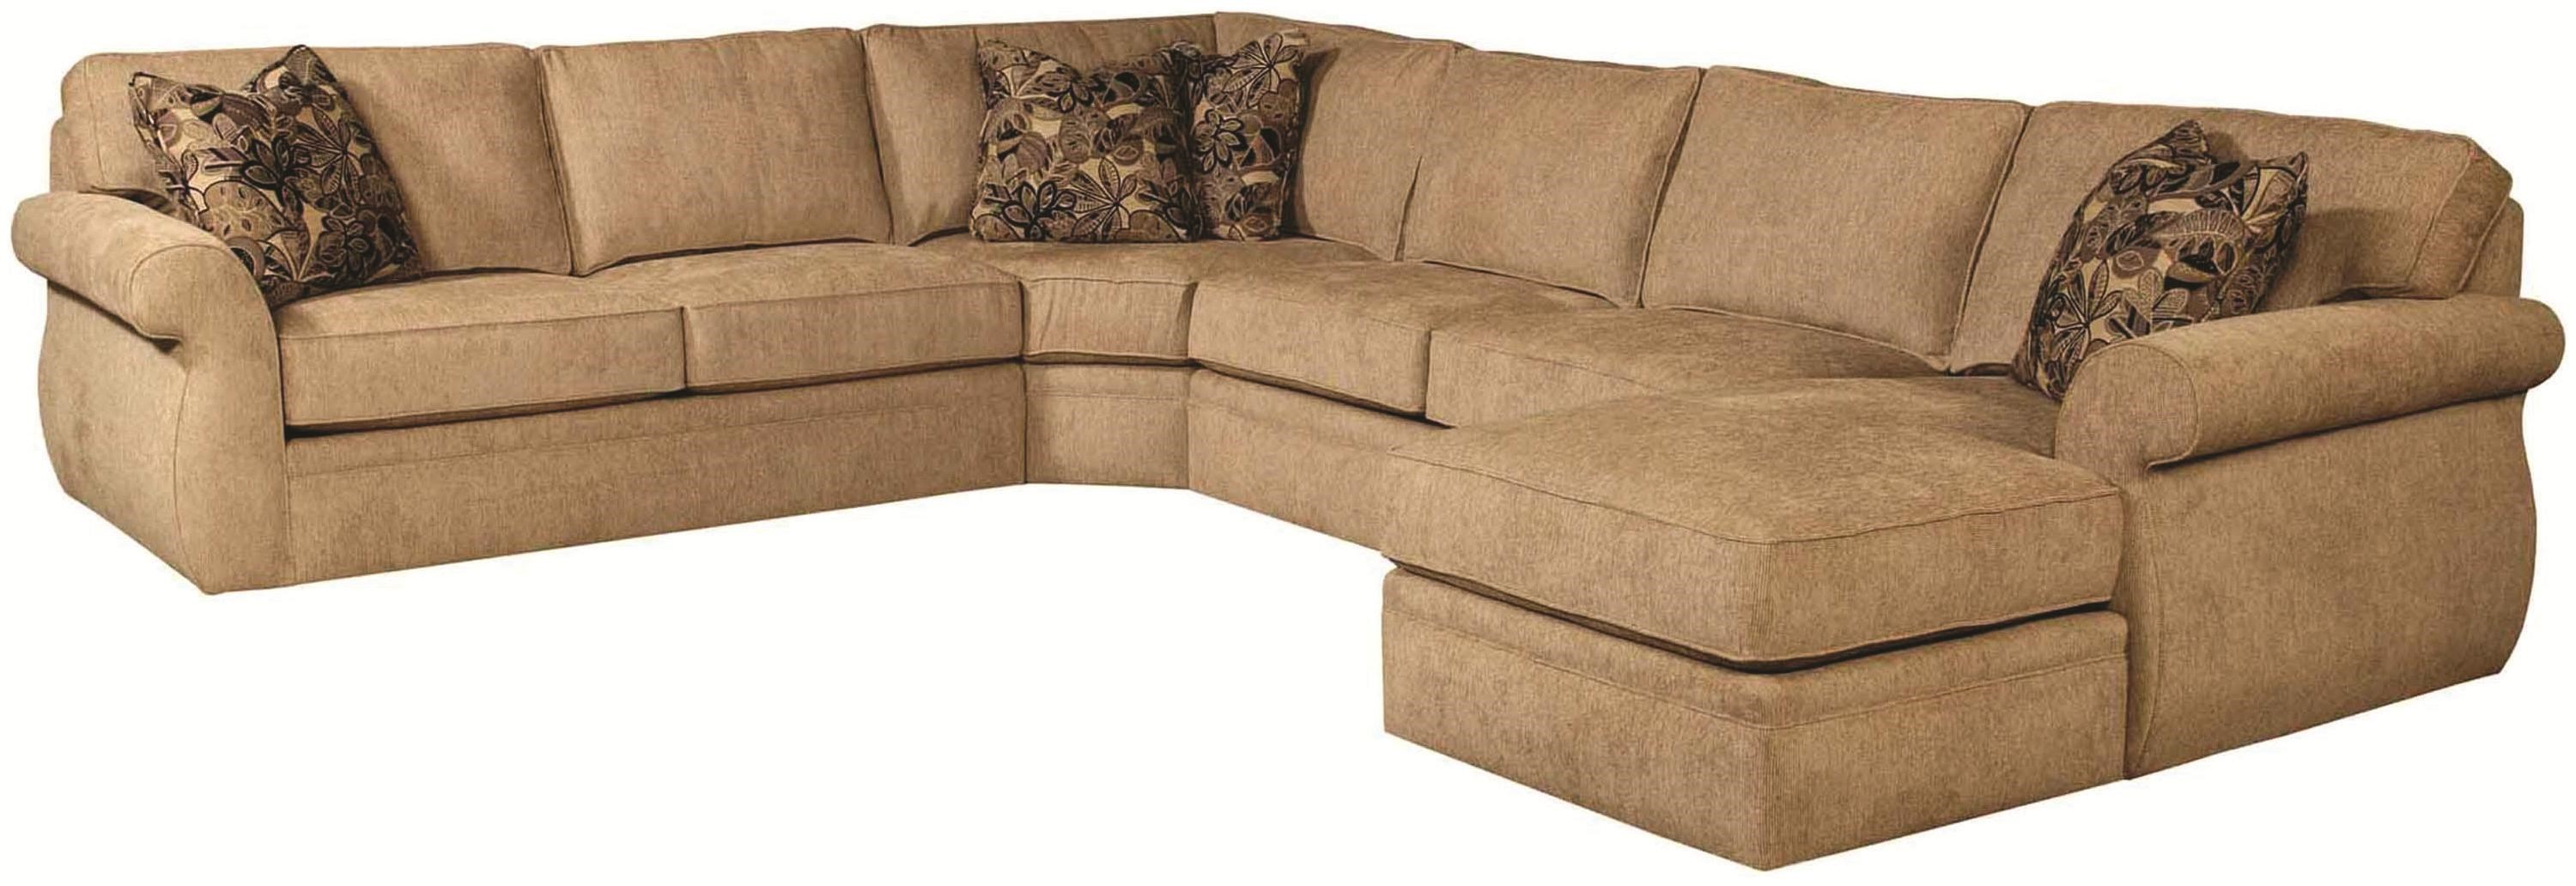 7 Foot Sectional Couch Related To Diablo 7piece Power Reclining